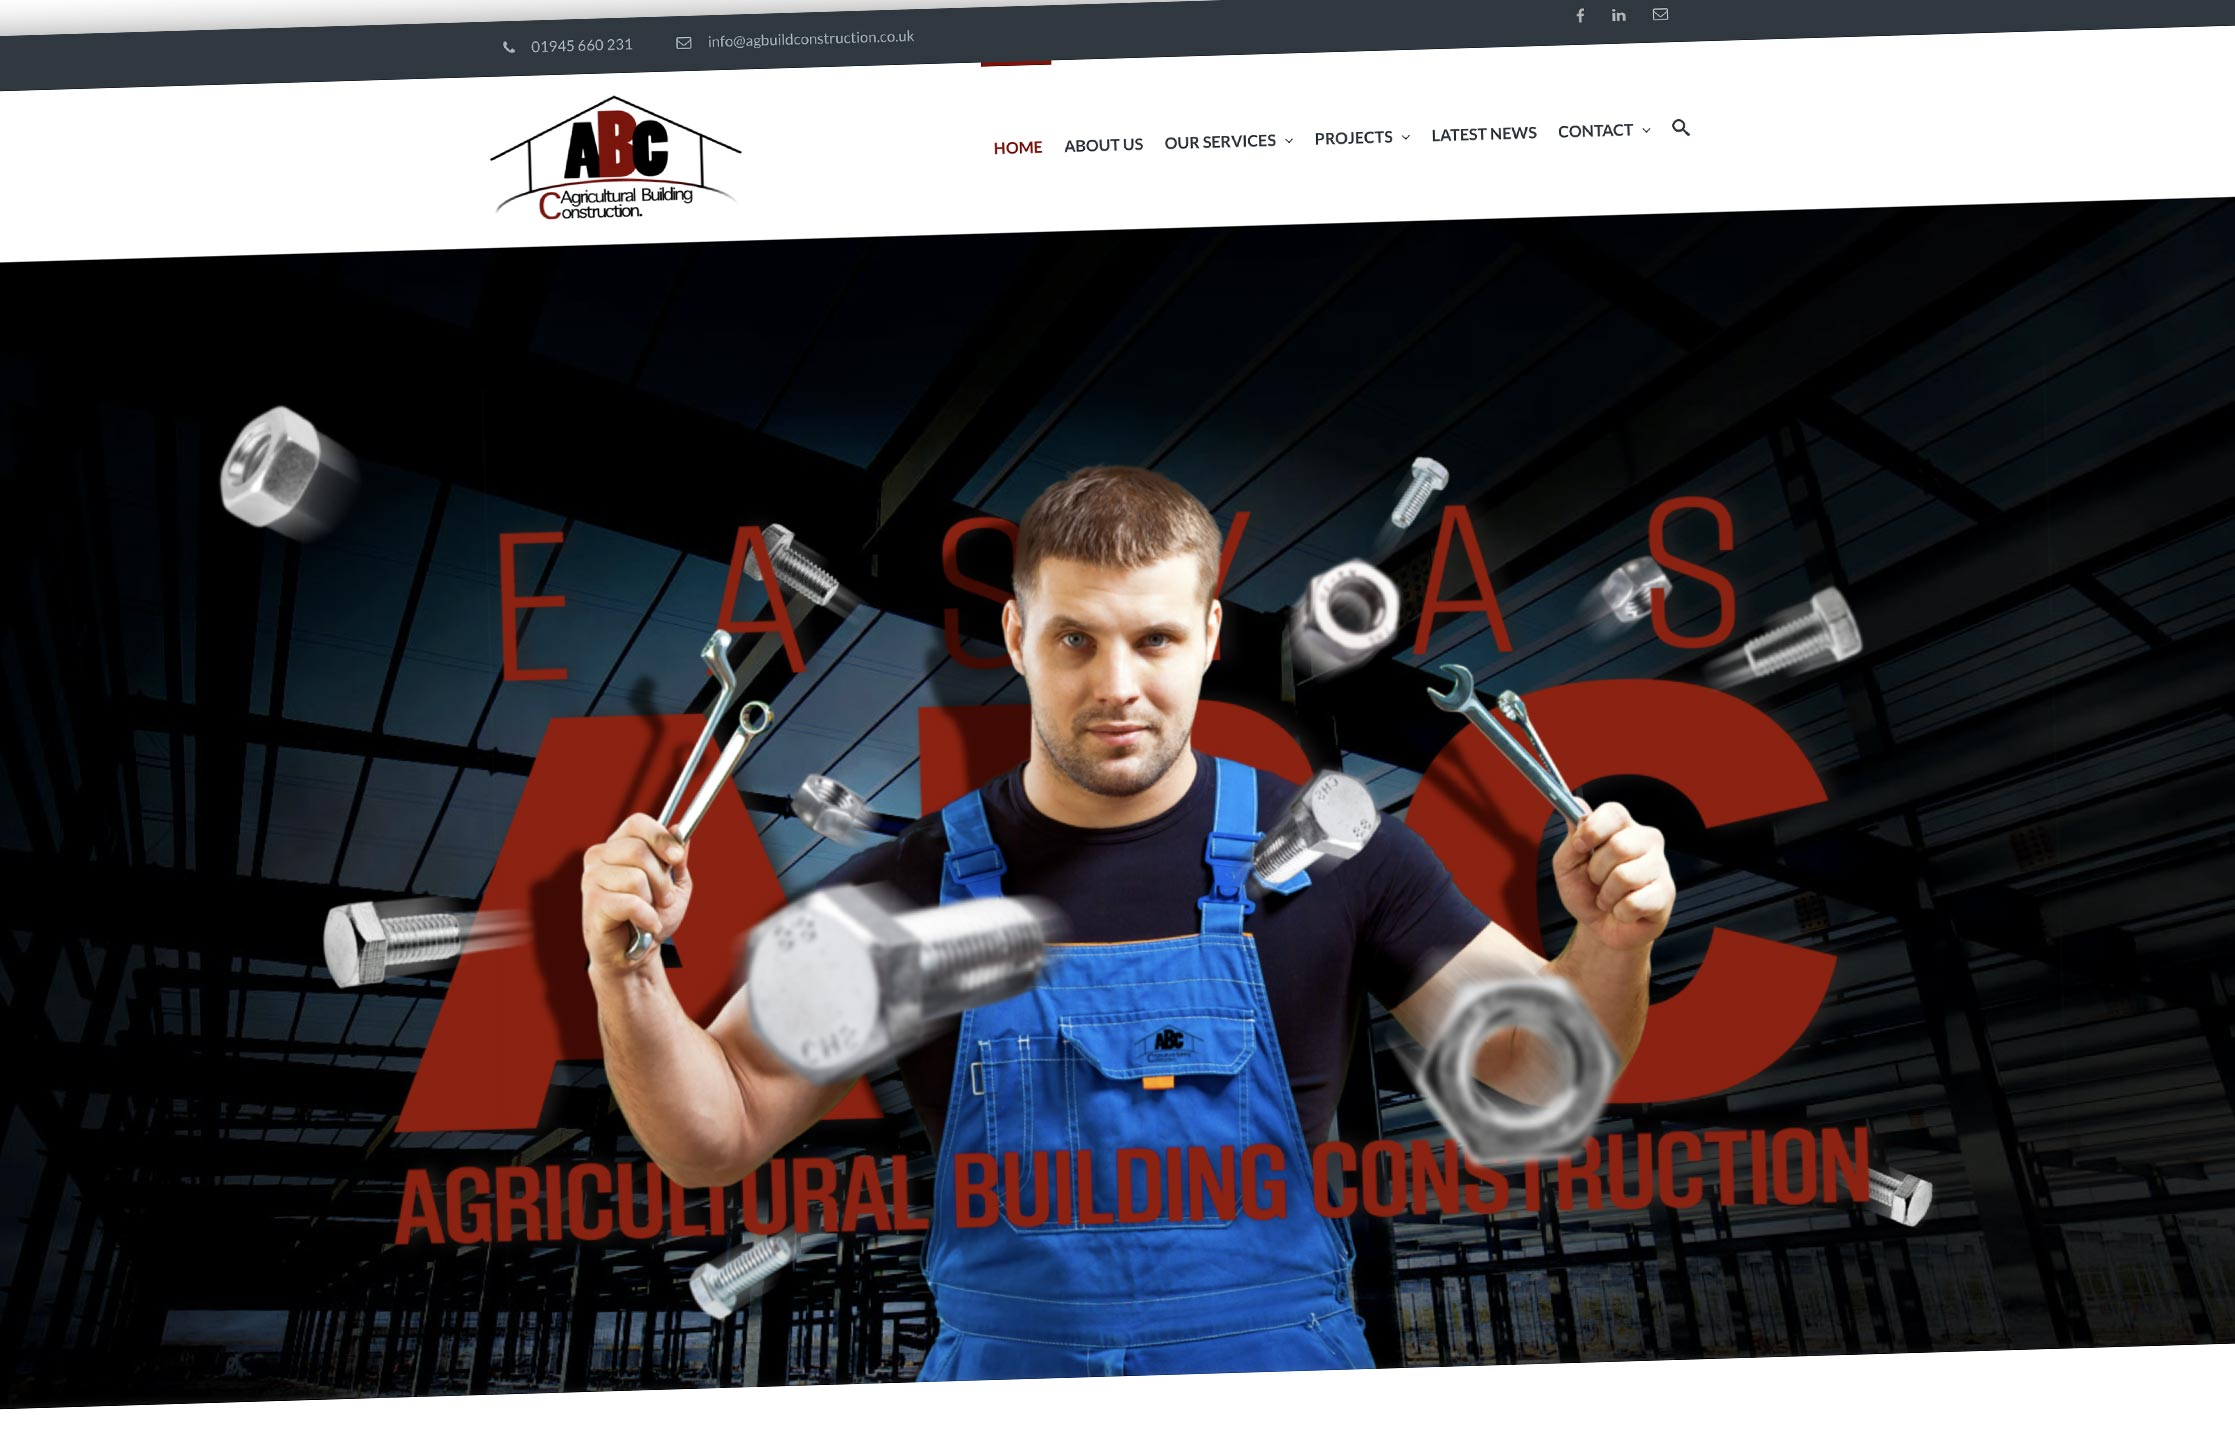 ABC - Agricultural Building Construction Specialists